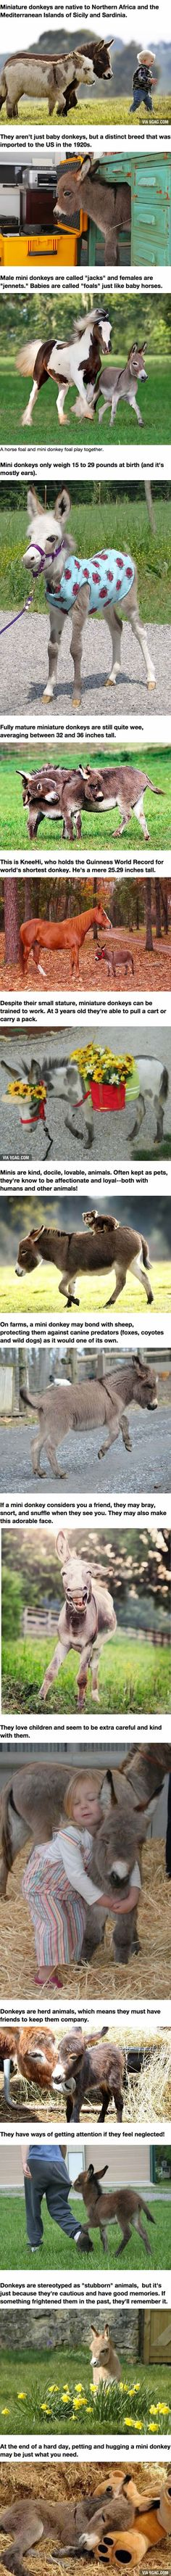 Mini Donkeys Are Just The Dream Pet Of Us All!